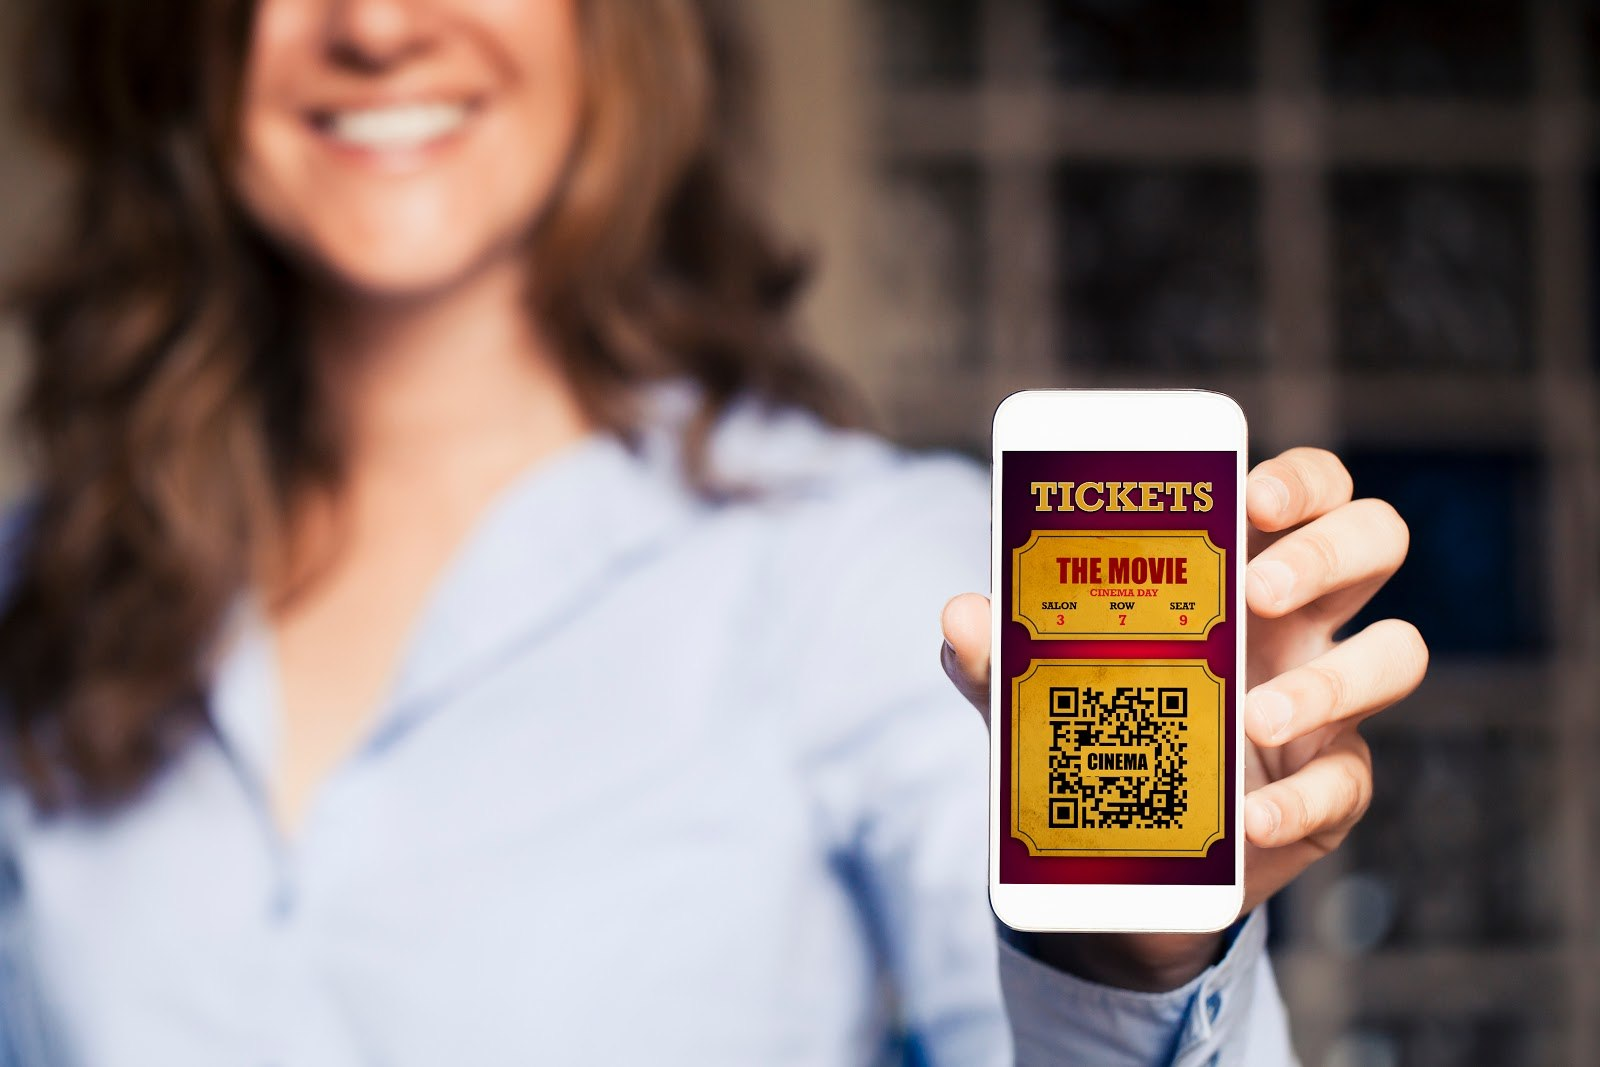 A woman holding a phone with a QR code ticket to the movie